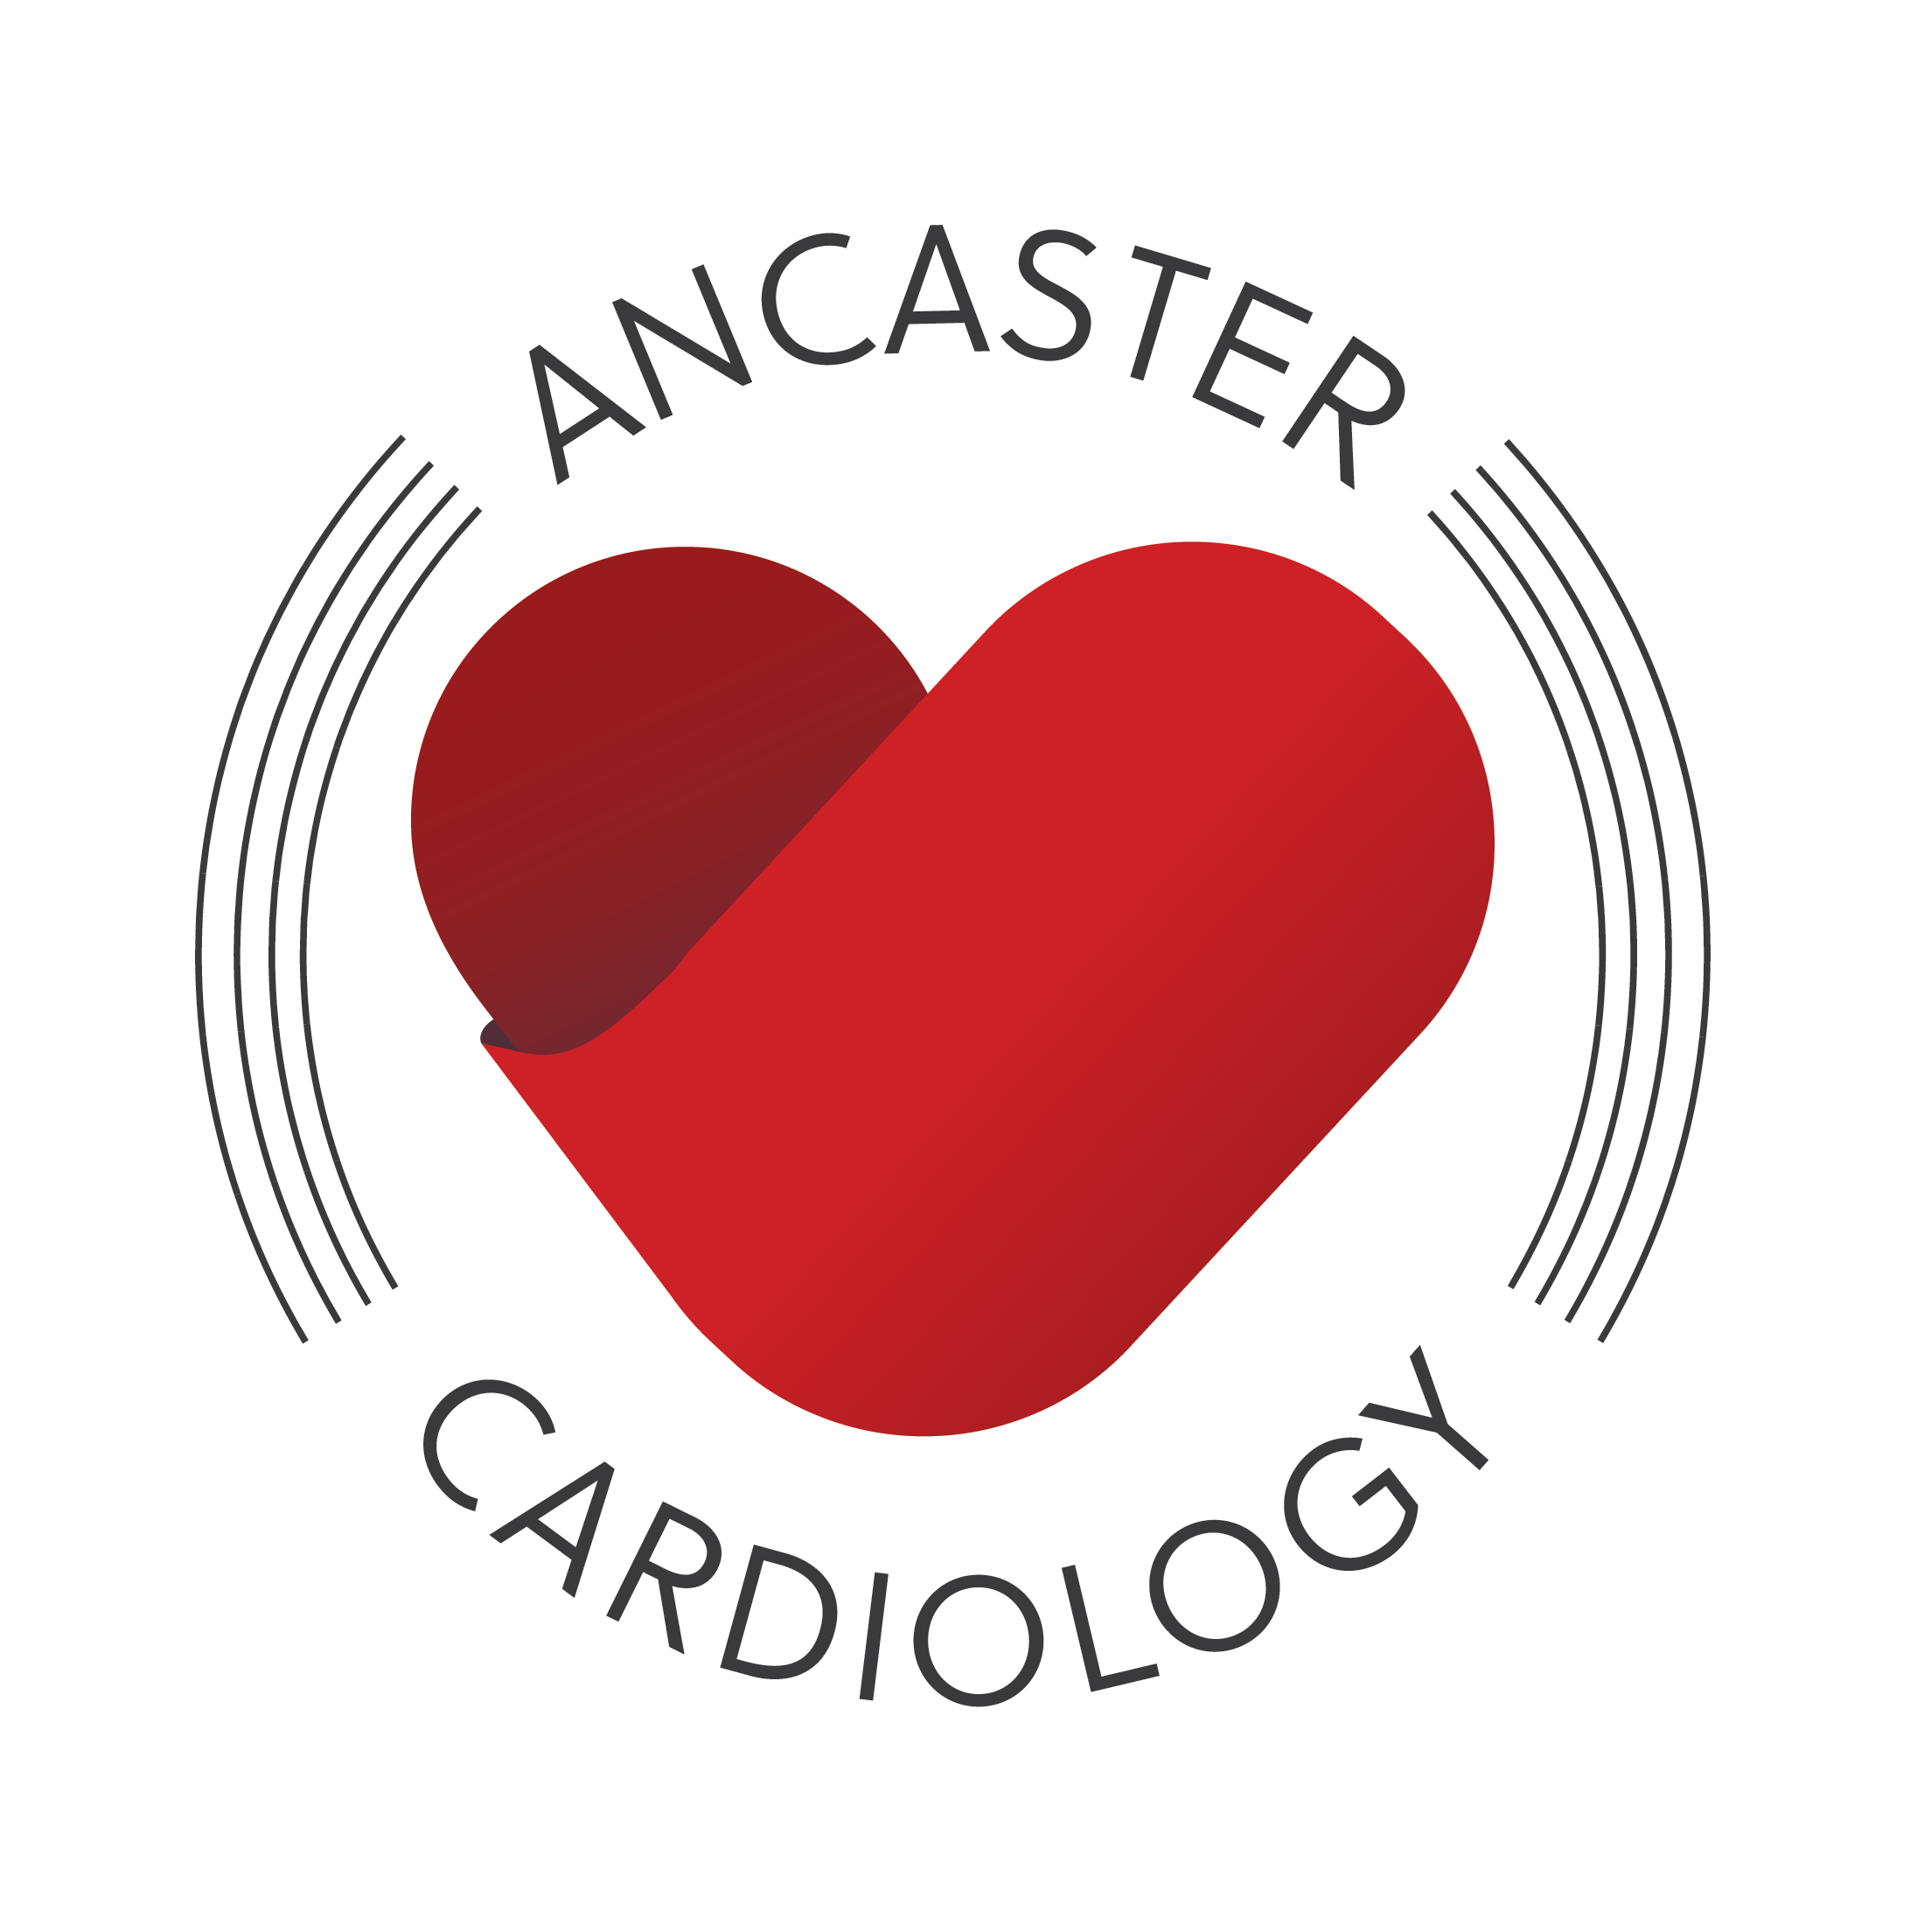 Ancaster Cardiology